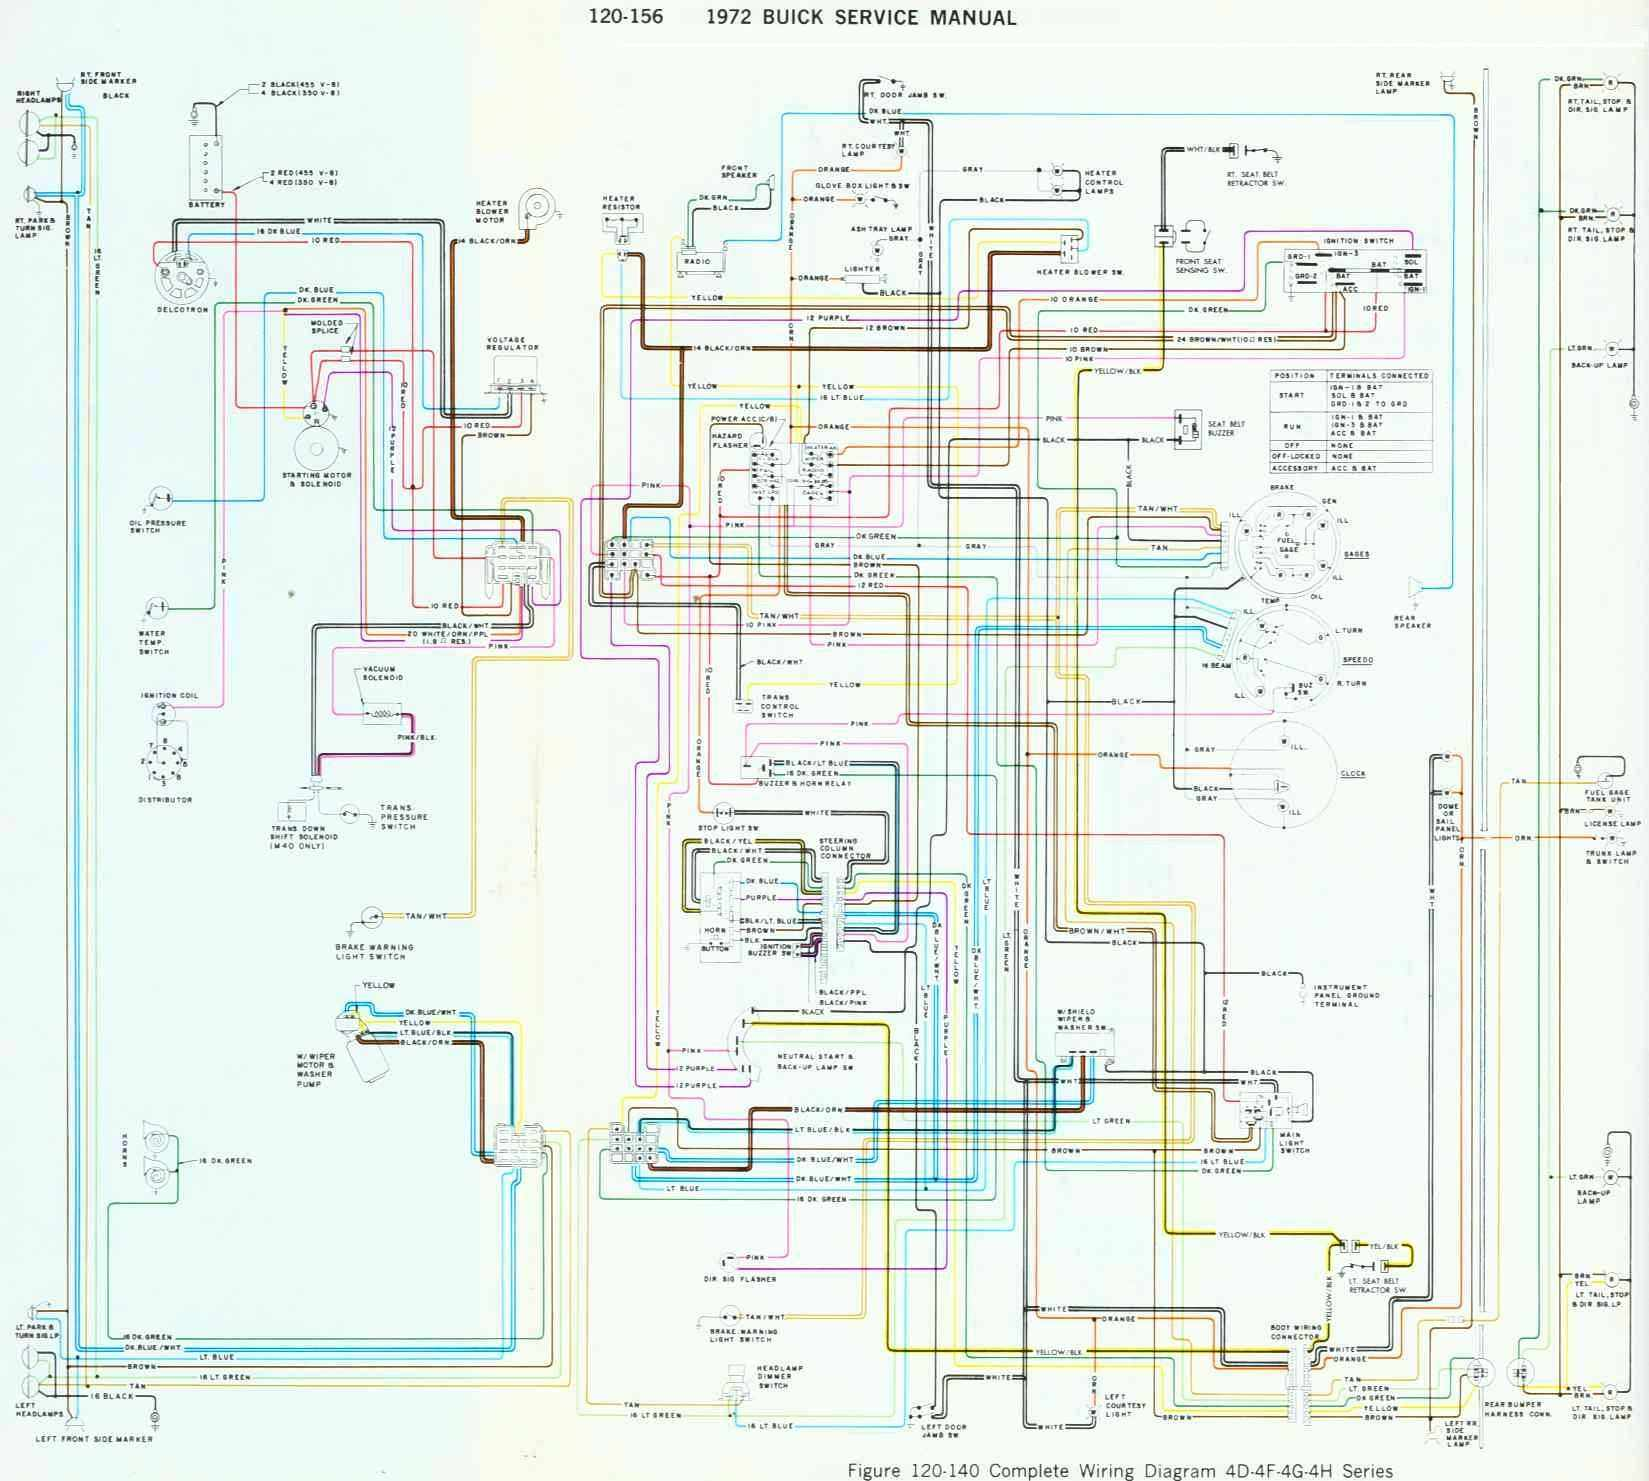 Paccar Wiring Diagram Library. Paccar Mx 13 Engine Diagram GMC Wiring. Wiring. Paccar Mx Wire Diagram At Scoala.co